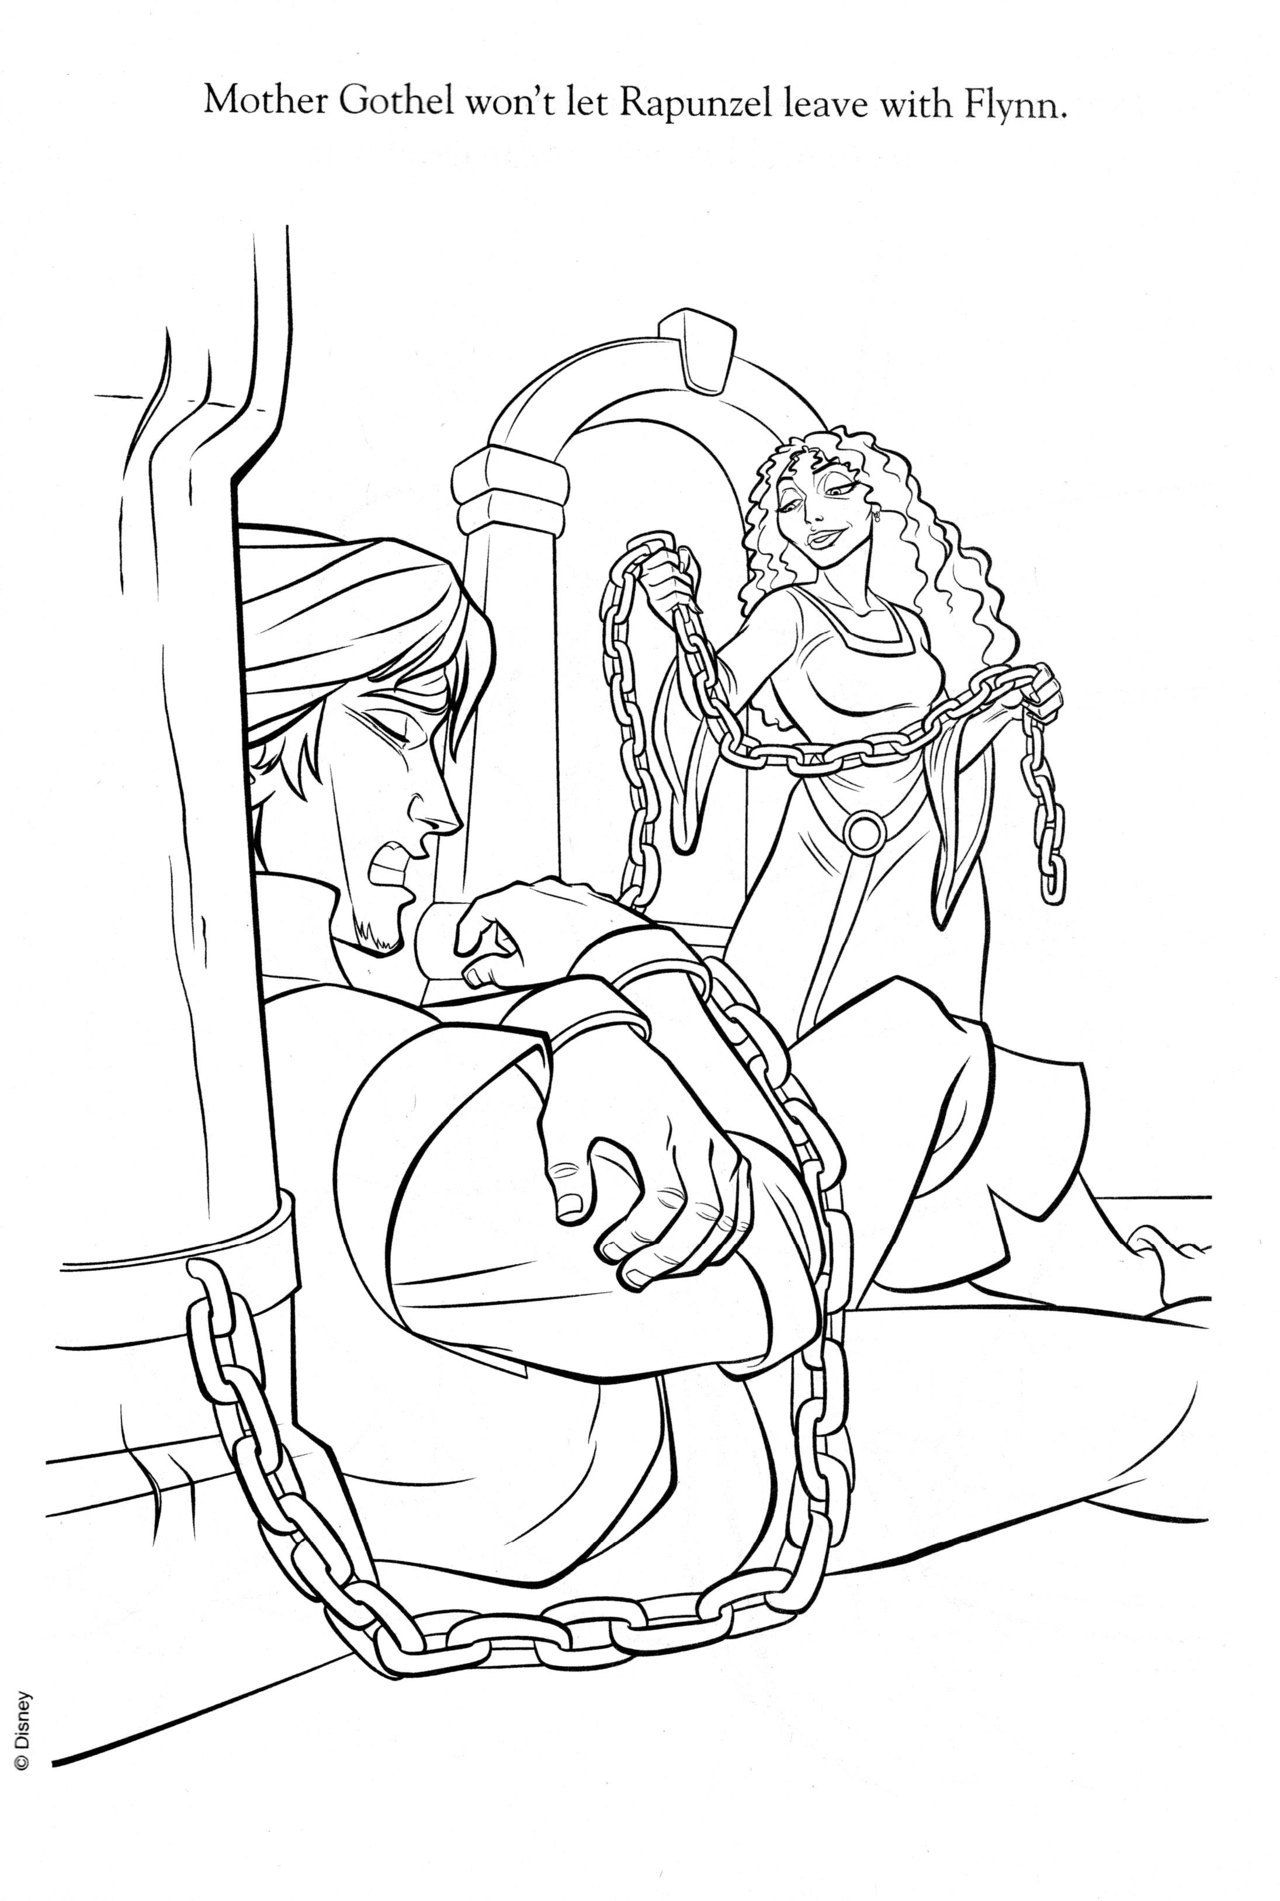 Disney Coloring Pages Tangled Coloring Pages Mermaid Coloring Pages Disney Coloring Pages